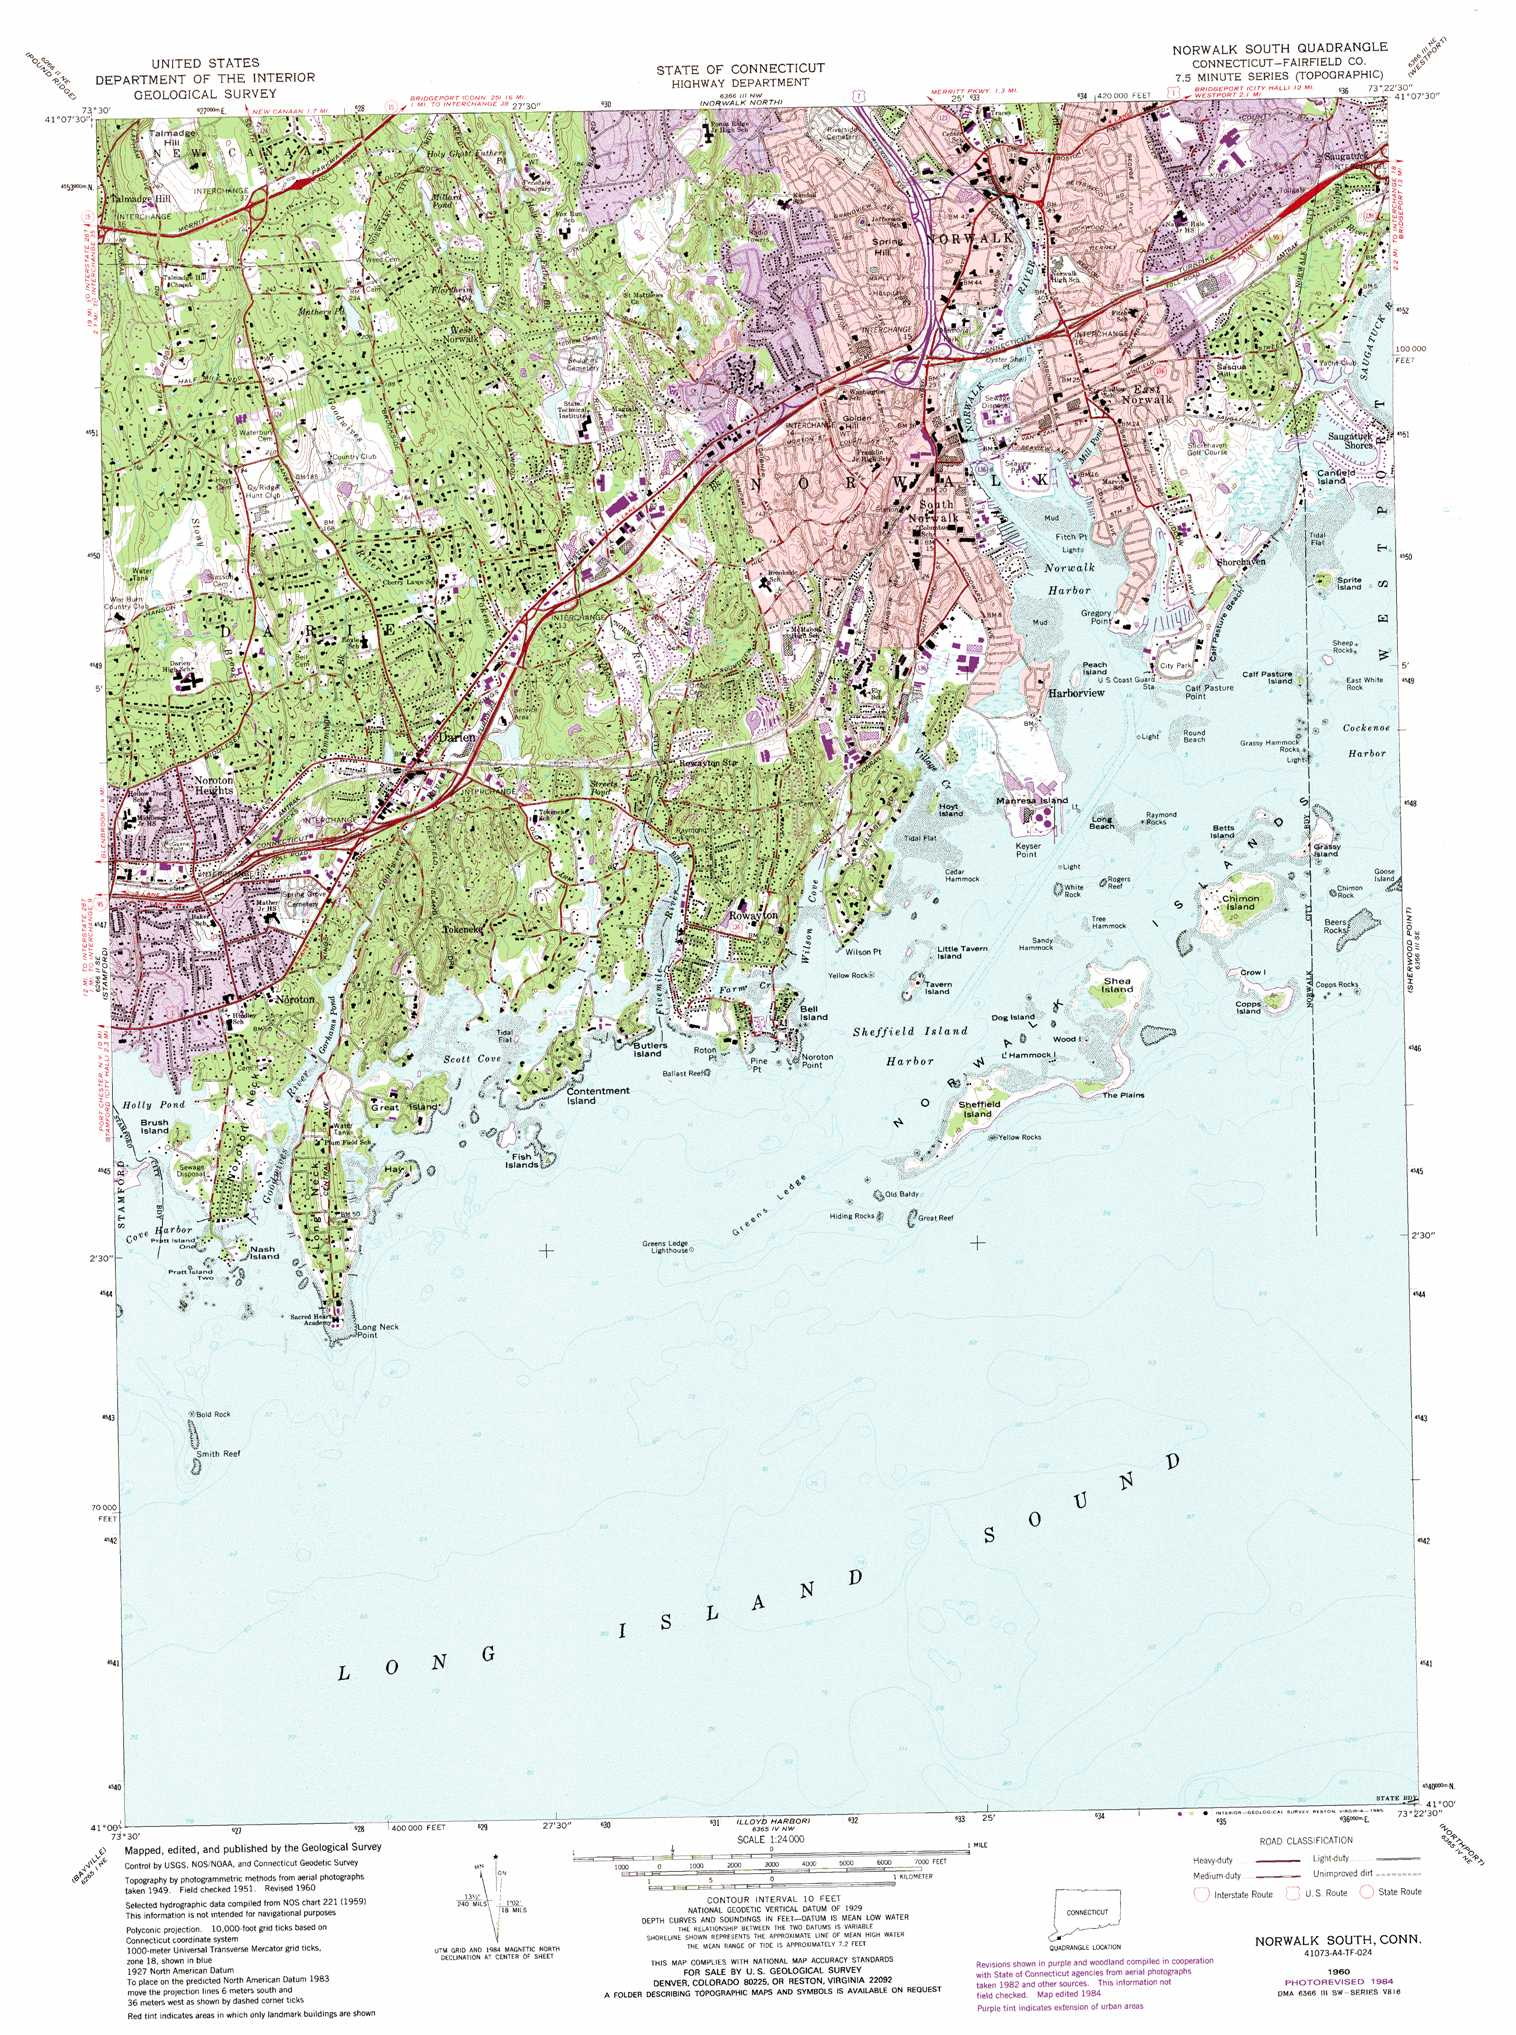 Norwalk South topographic map, CT, NY - USGS Topo Quad 41073a4